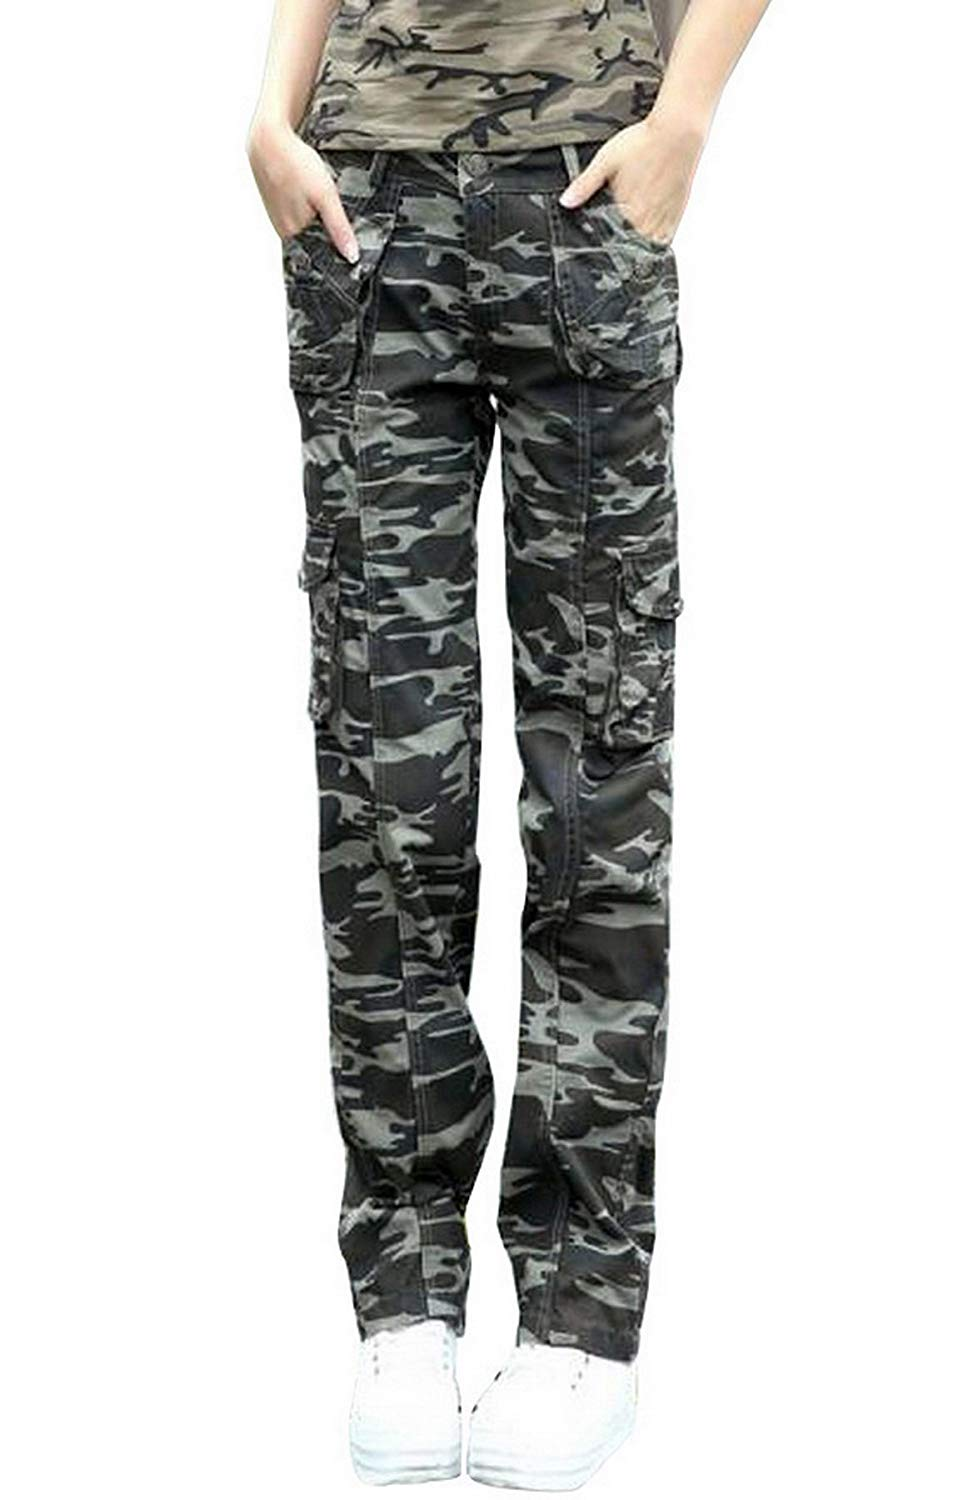 806d7f2ac4f41 Shoppi Women outdoor sports Multi-pocket 95% cotton trousers Overalls jeans  Ladies Military Camouflage